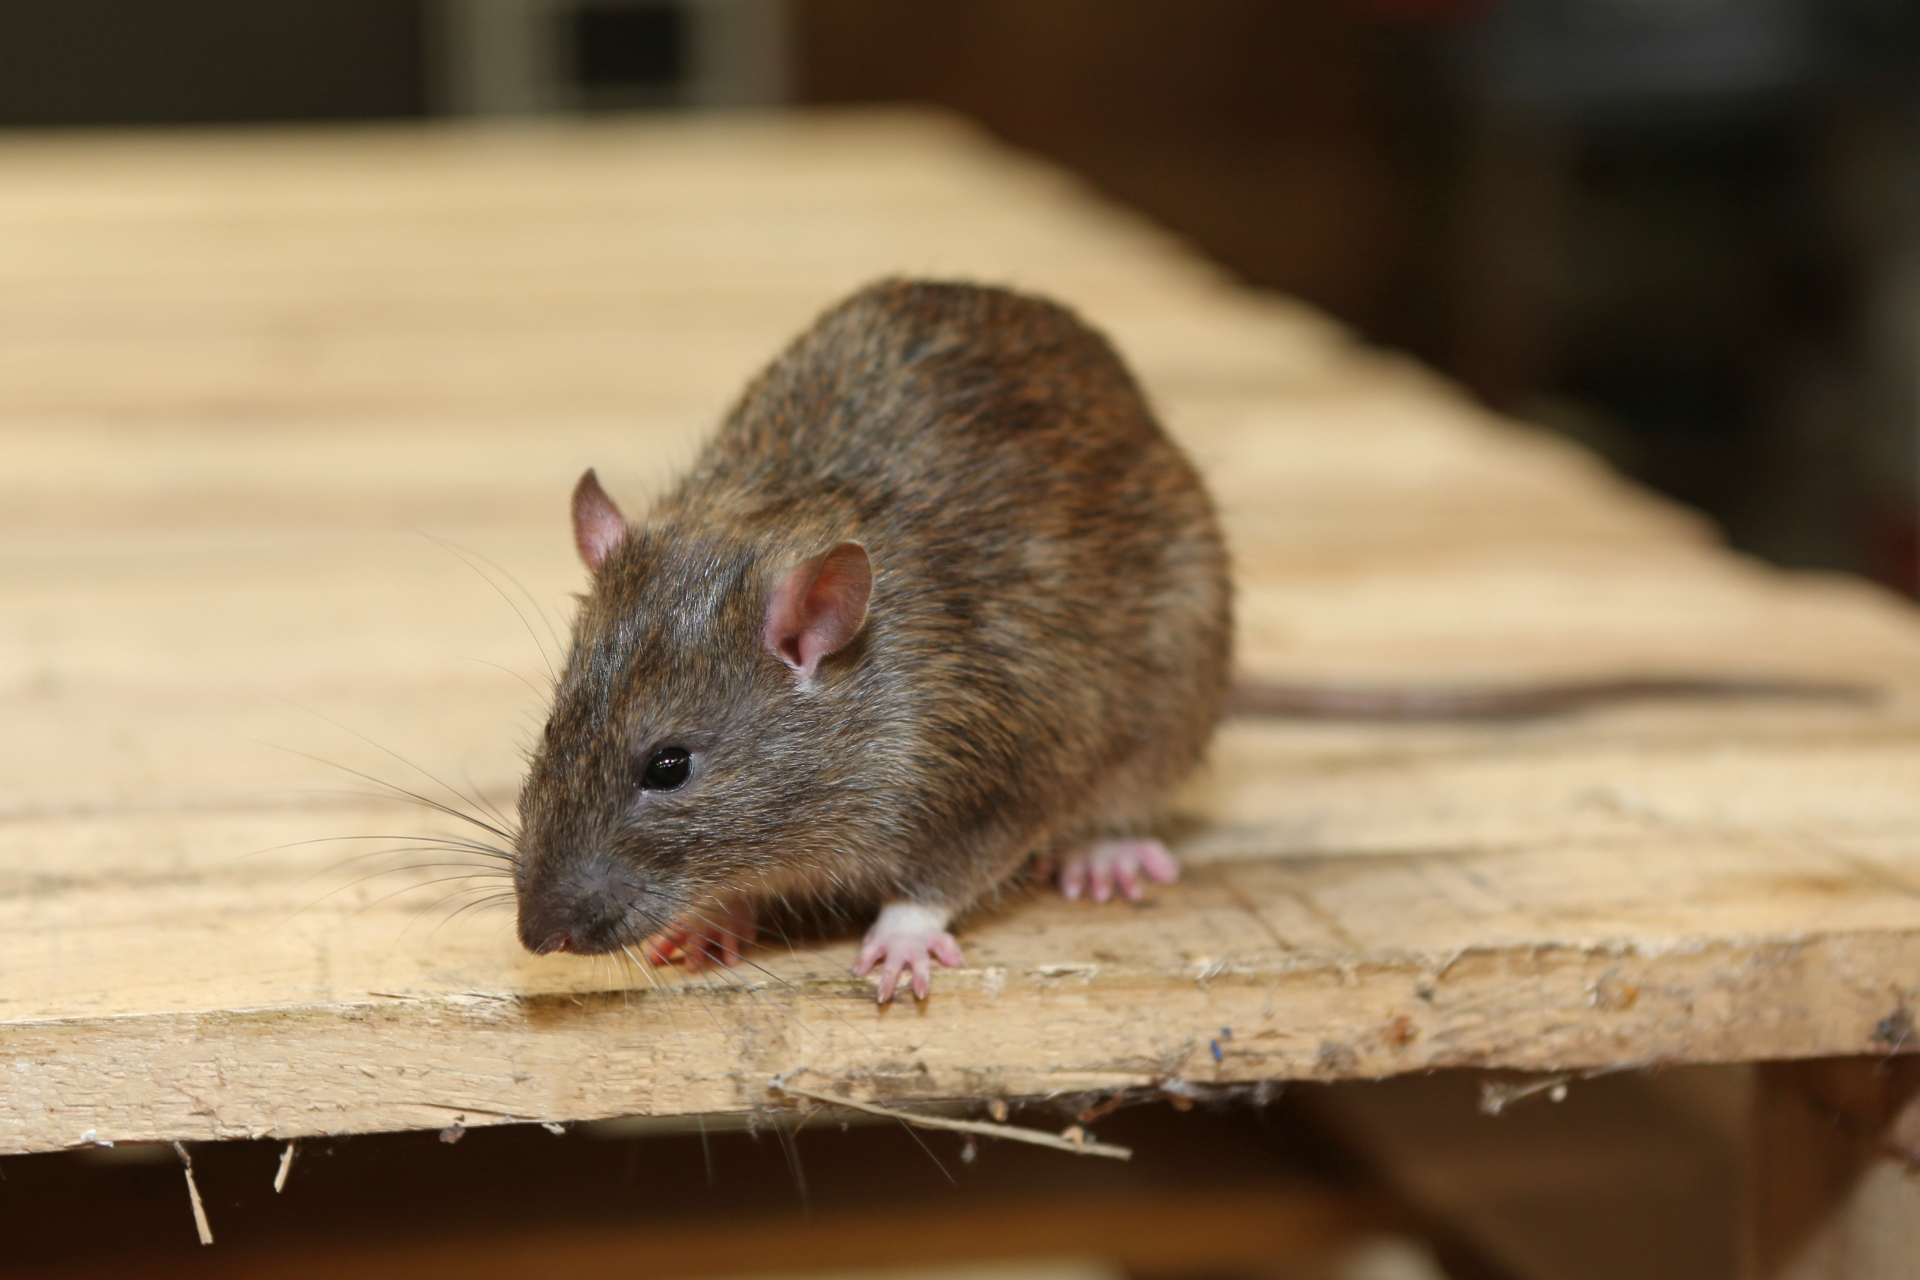 Rat extermination, Pest Control in Esher, Claygate, KT10. Call Now 020 8166 9746